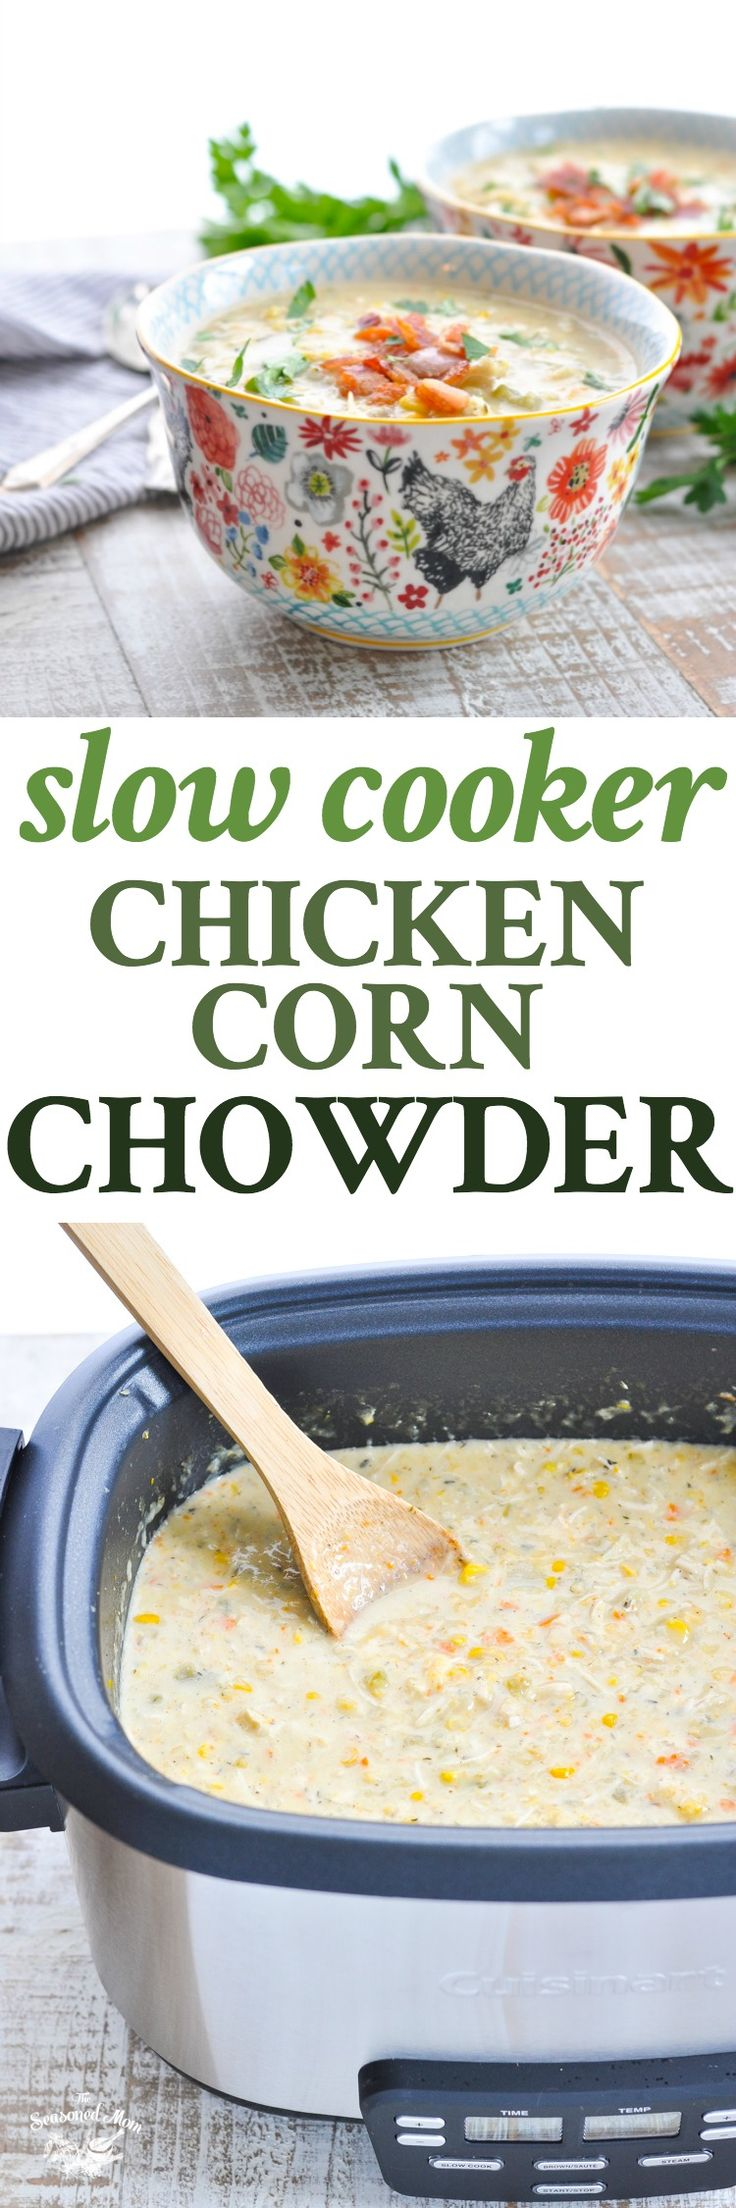 Long vertical image of bowl of corn chowder and slow cooker.